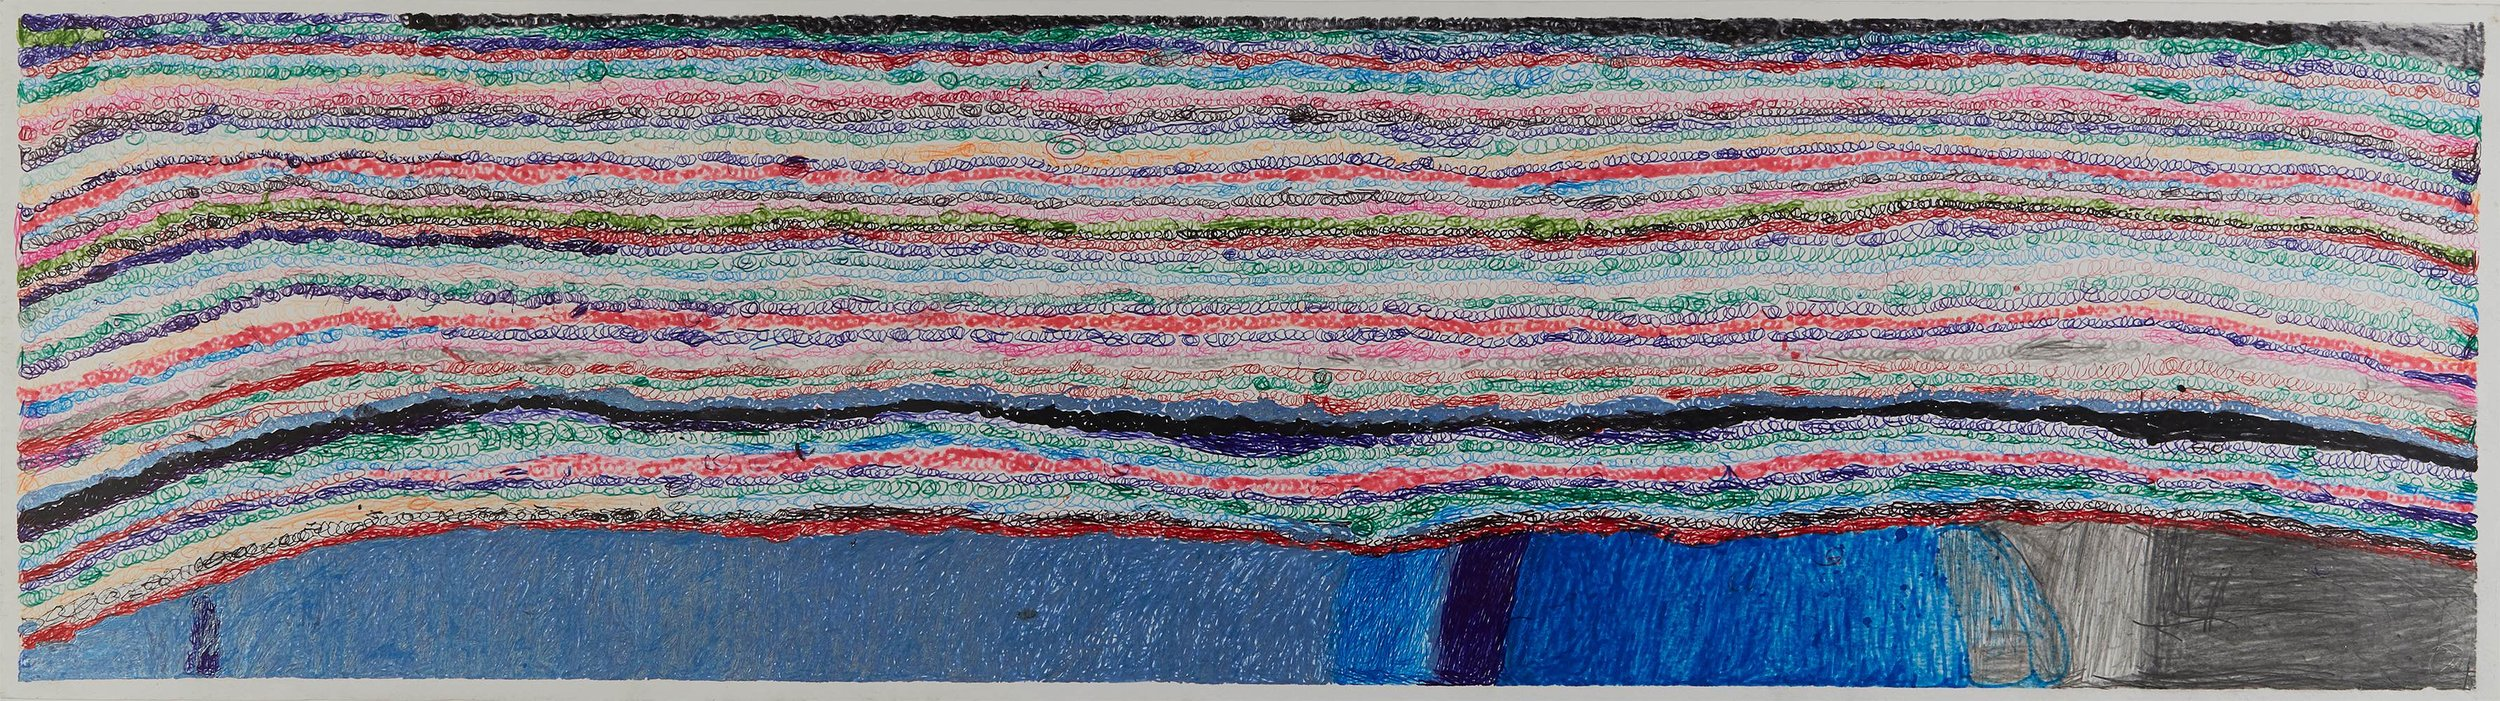 Joseph Lambert  Untitled  , 2017 Ink, marker, pencil, crayon on paper 9.45 x 33.66 inches 24 x 85.5 cm JLam 30